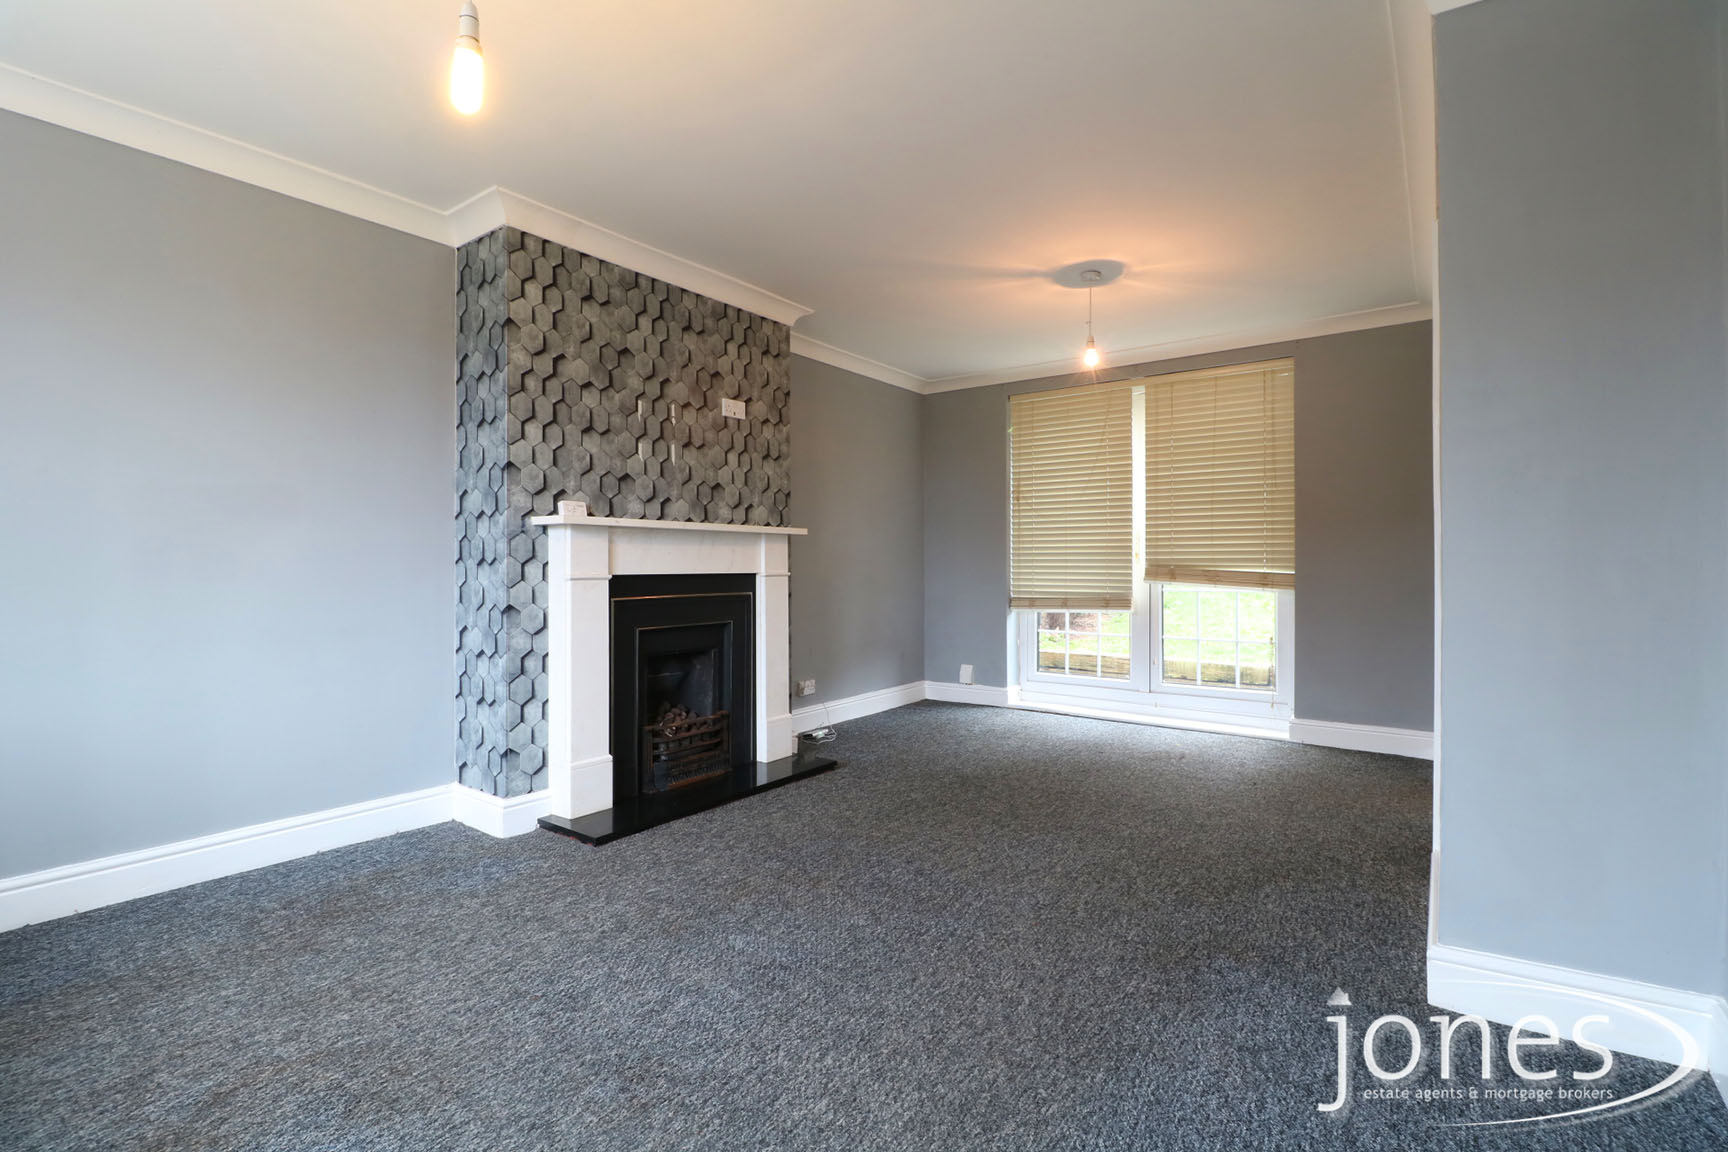 Home for Sale Let - Photo 03 Keats Road, Normanby, Middlesbrough, TS6 0RP